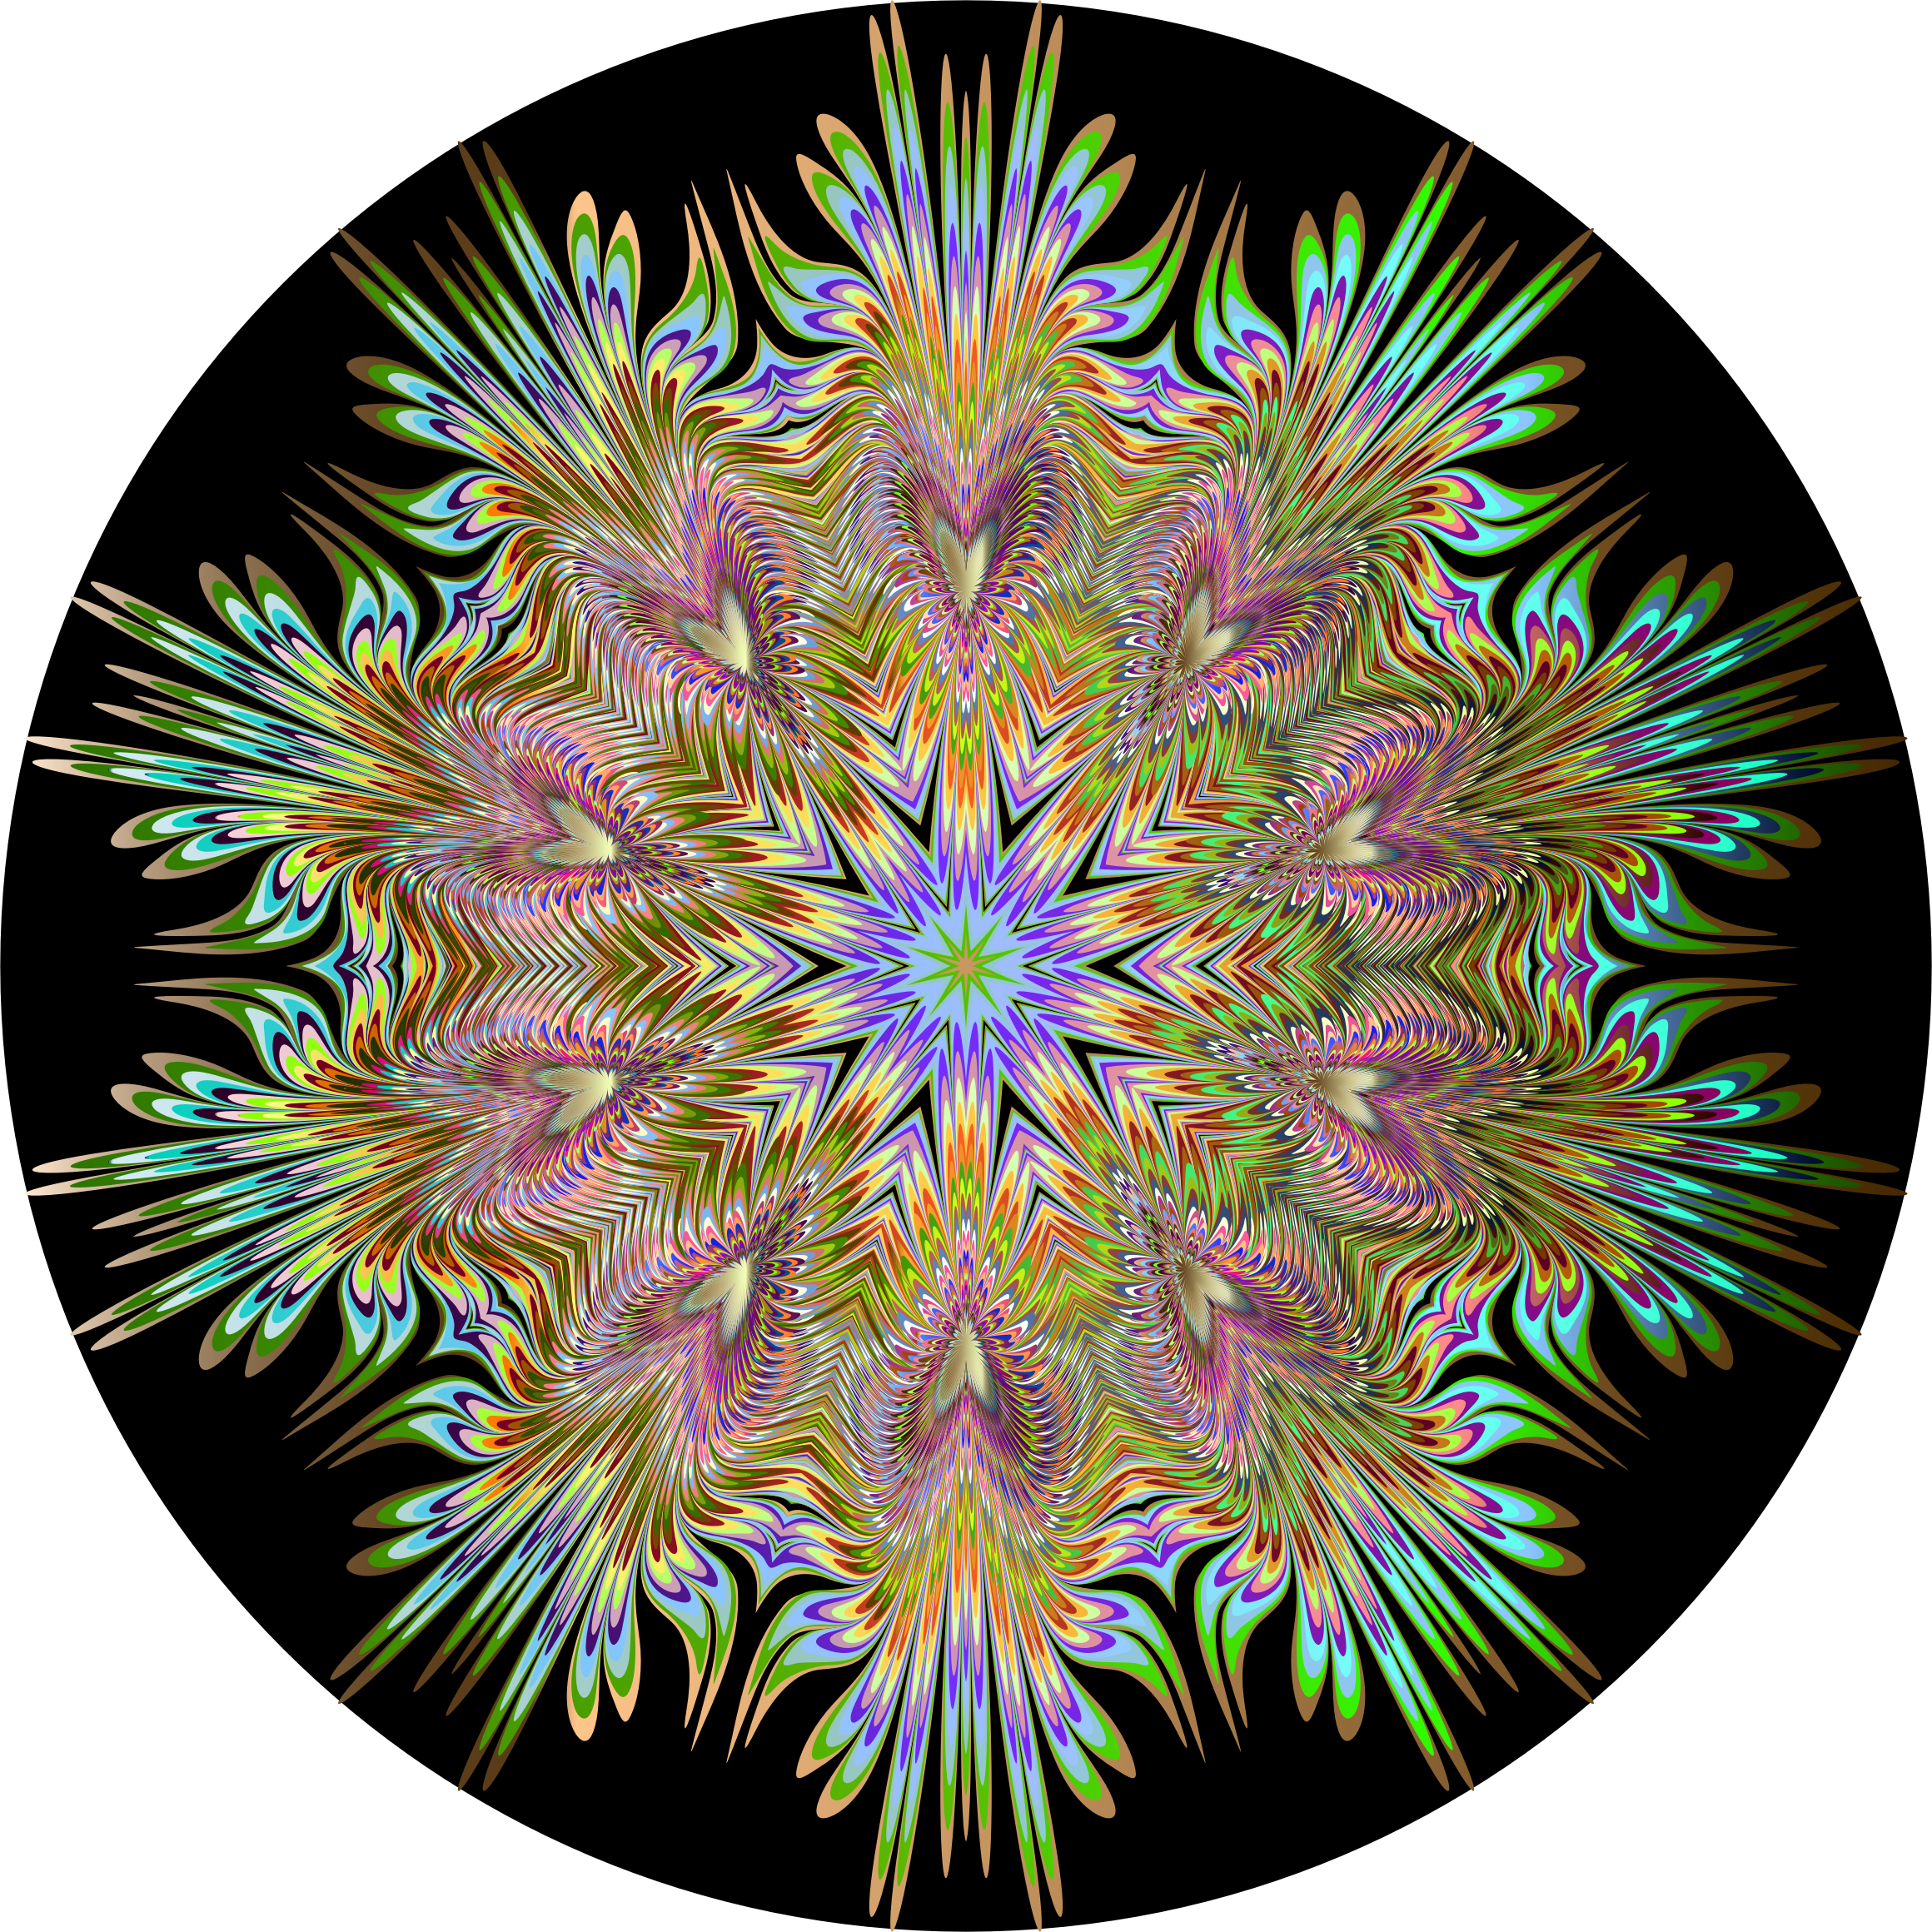 Chromatic Symmetric Mandala 4 by GDJ